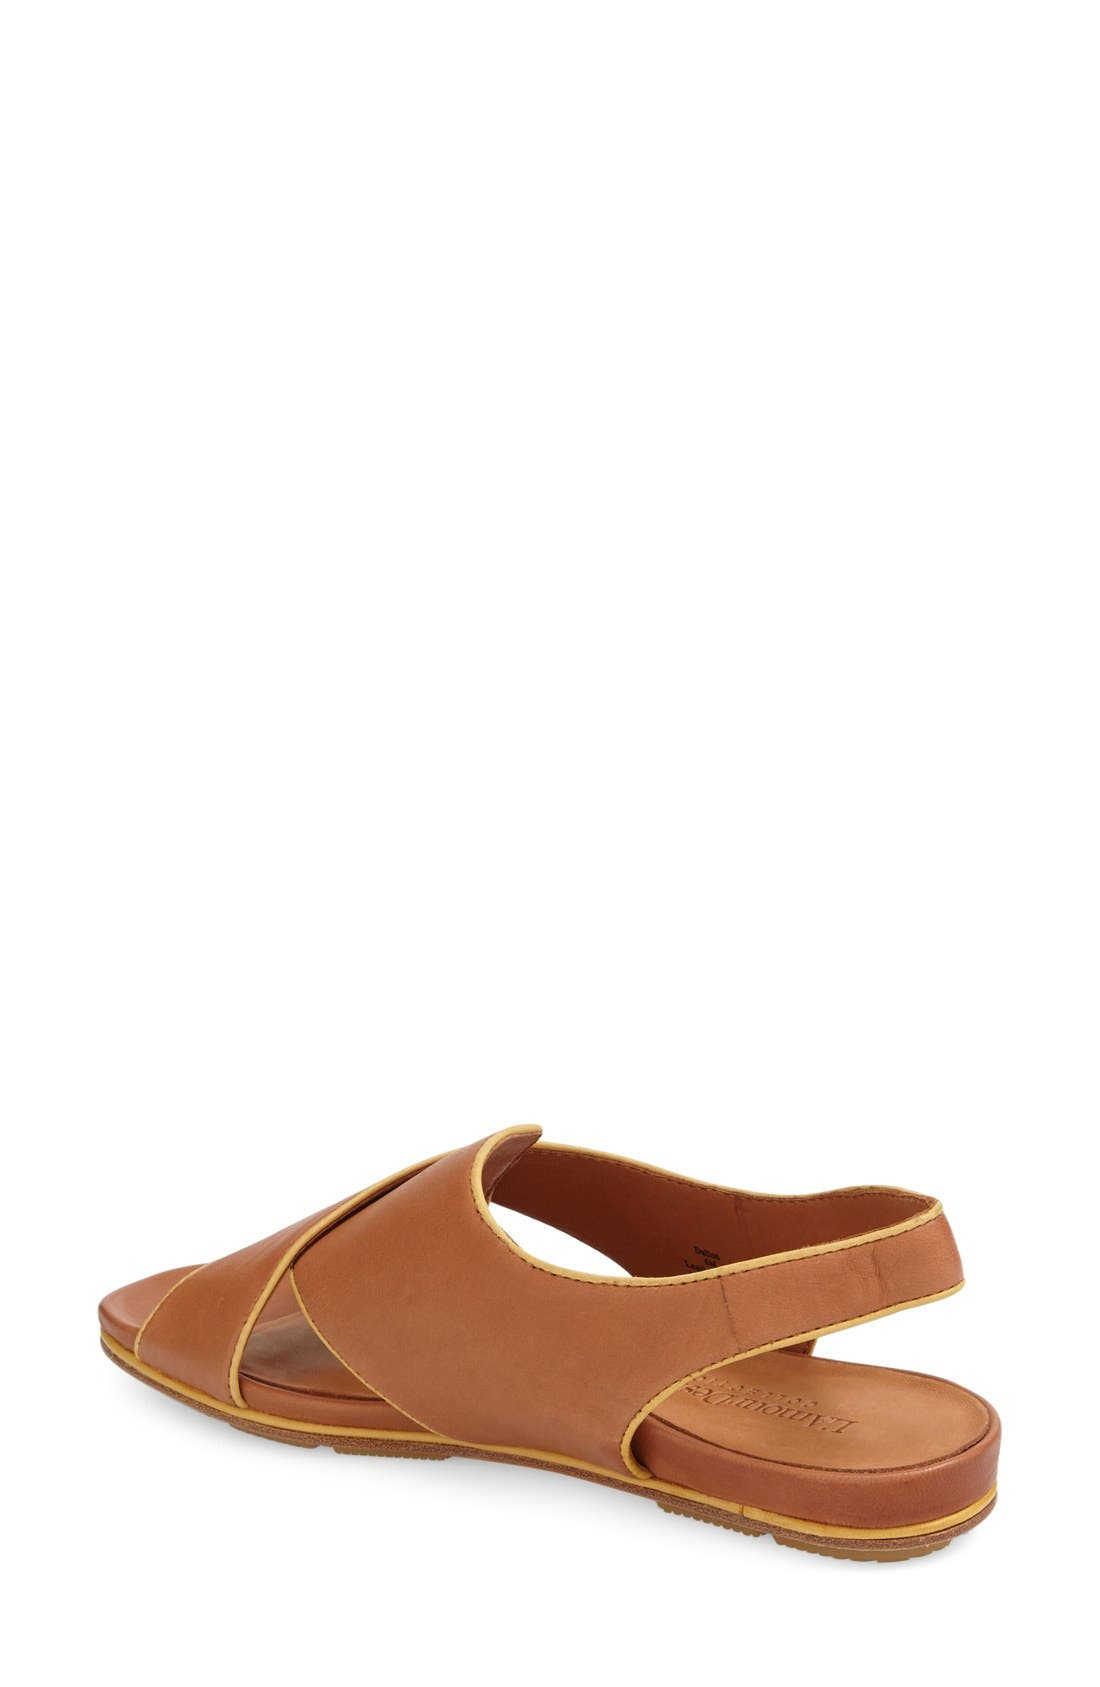 'Dallon' Crisscross Flat Sandal,                             Alternate thumbnail 3, color,                             200